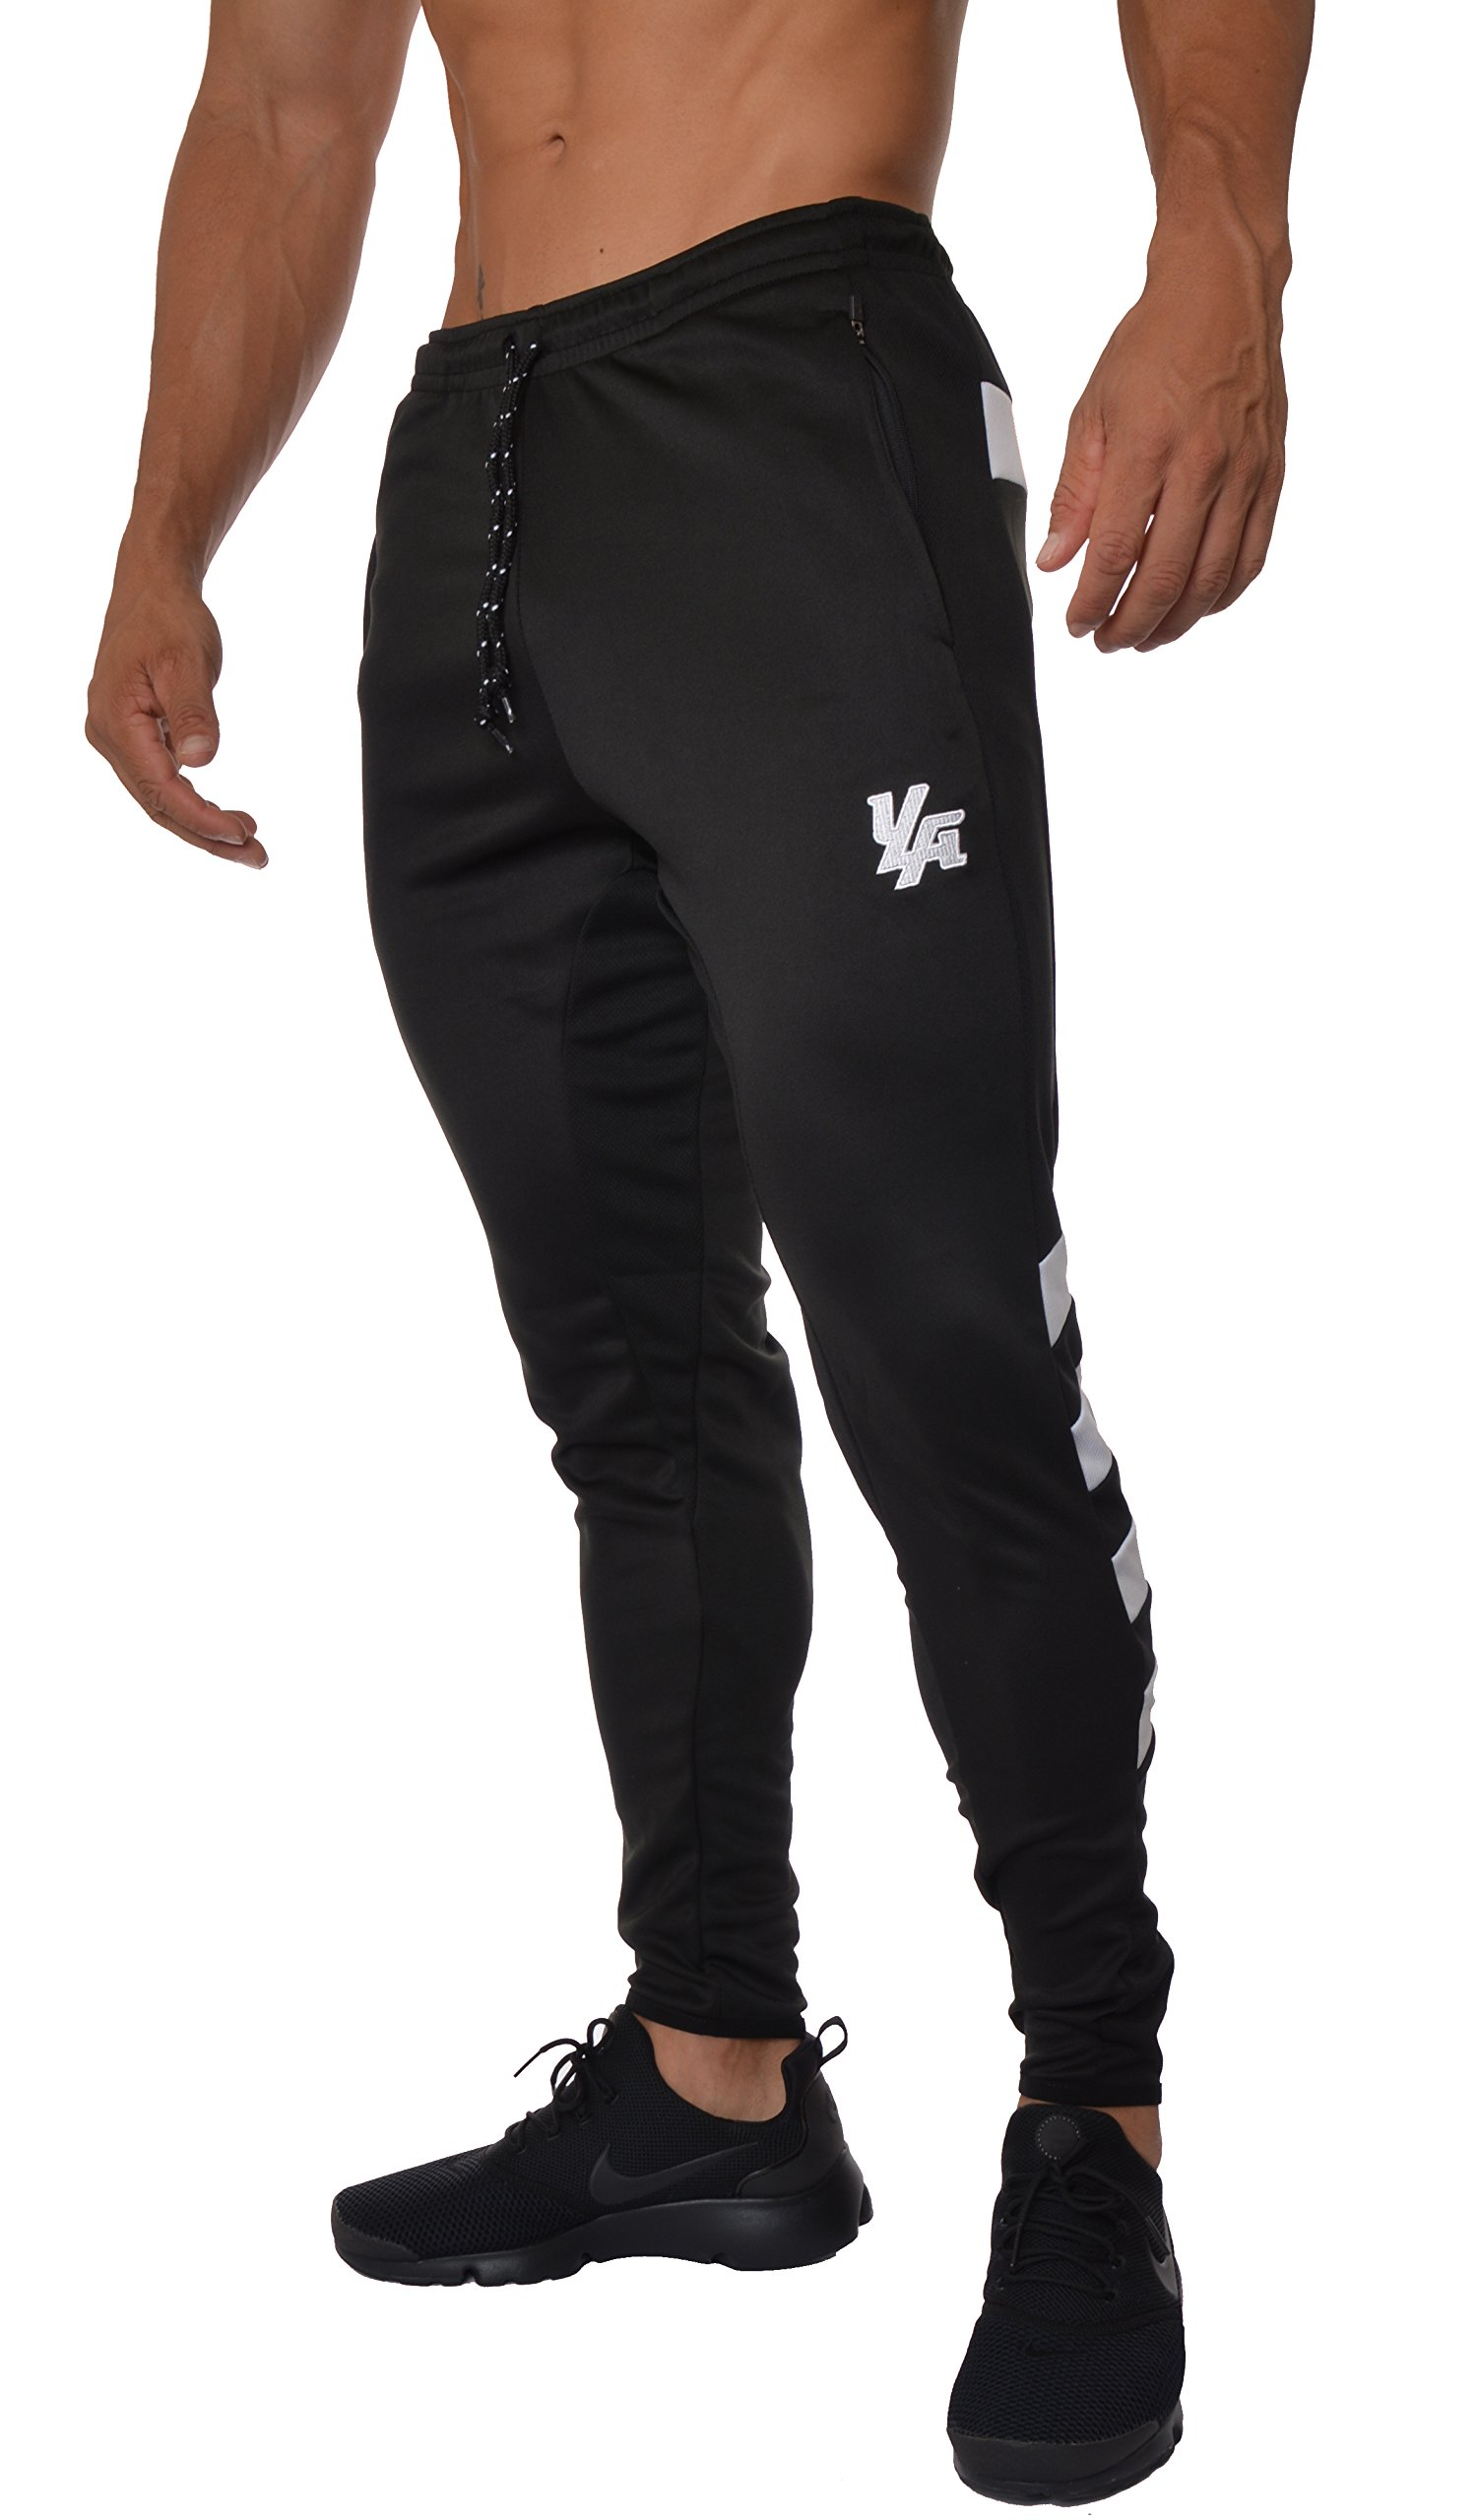 7797d7a19598 YoungLA Mens Soccer Training Pants Tapered fit 5 Colors product image